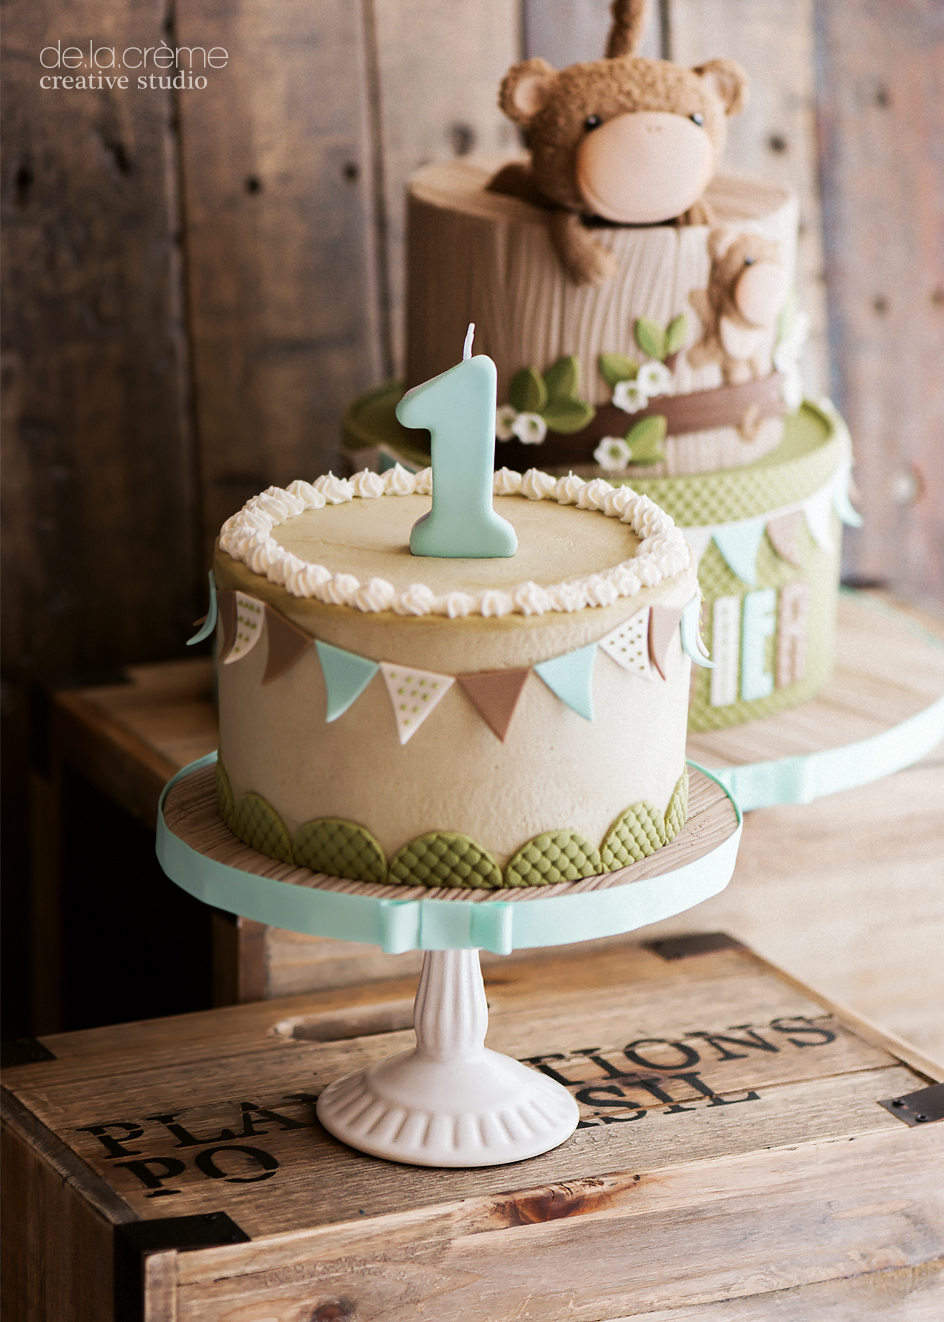 Xavier's mini cake was smashed open to reveal baby blue, french vanilla buttercream—yay, you're getting a little brother!